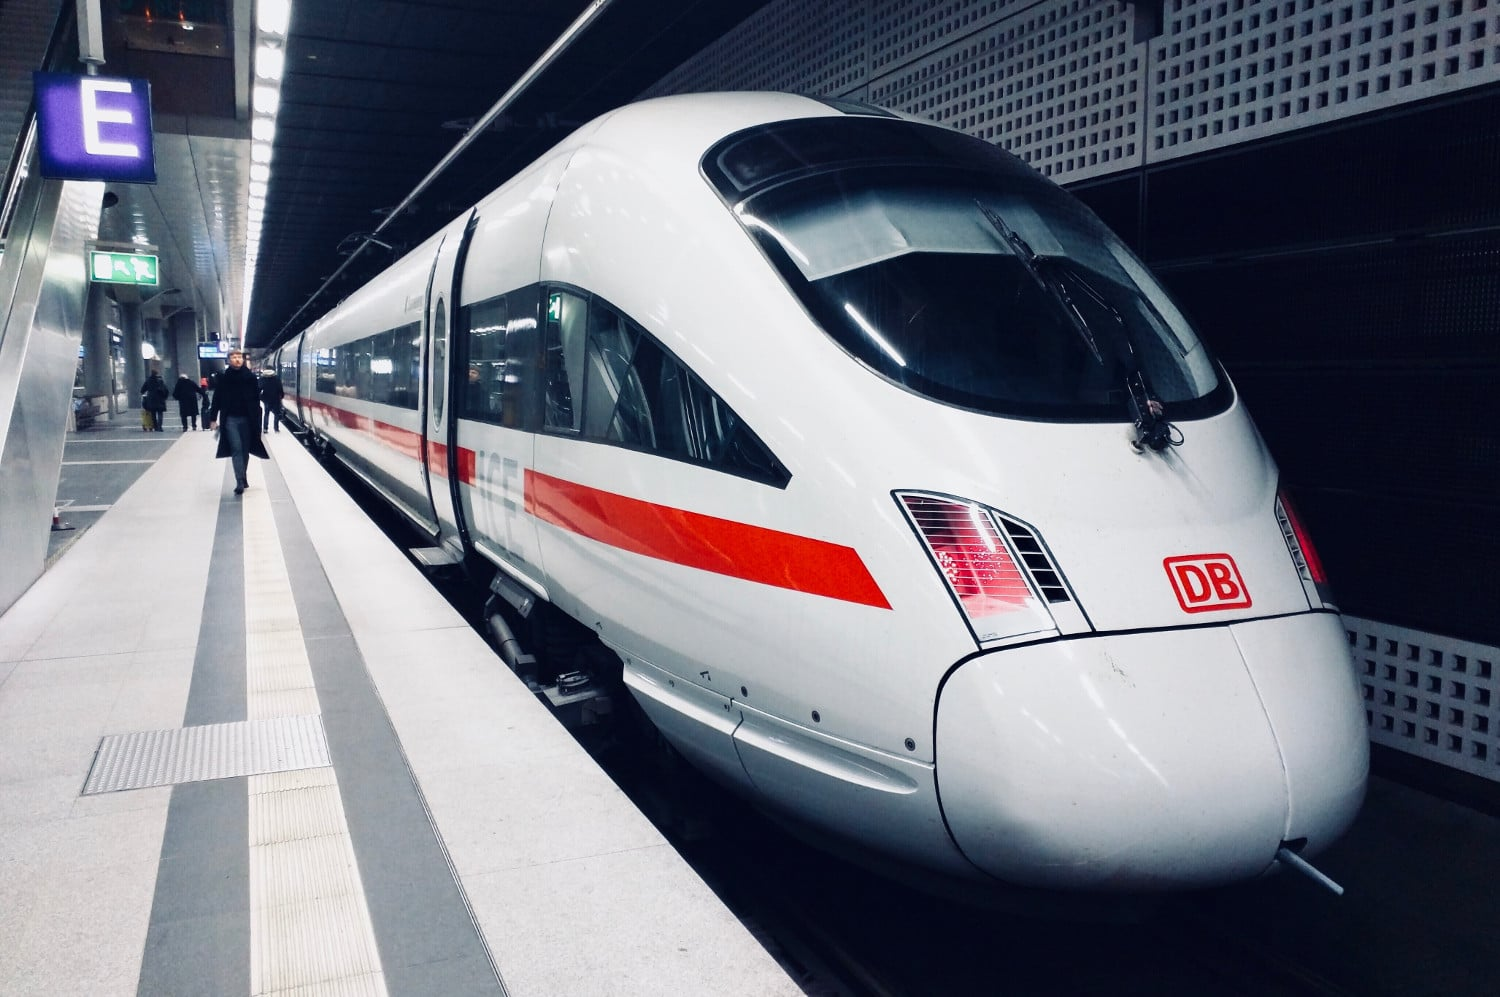 Andorra does not have the high-speed trains that much of Europe is known for, and isn't connected at all to the European rail system.